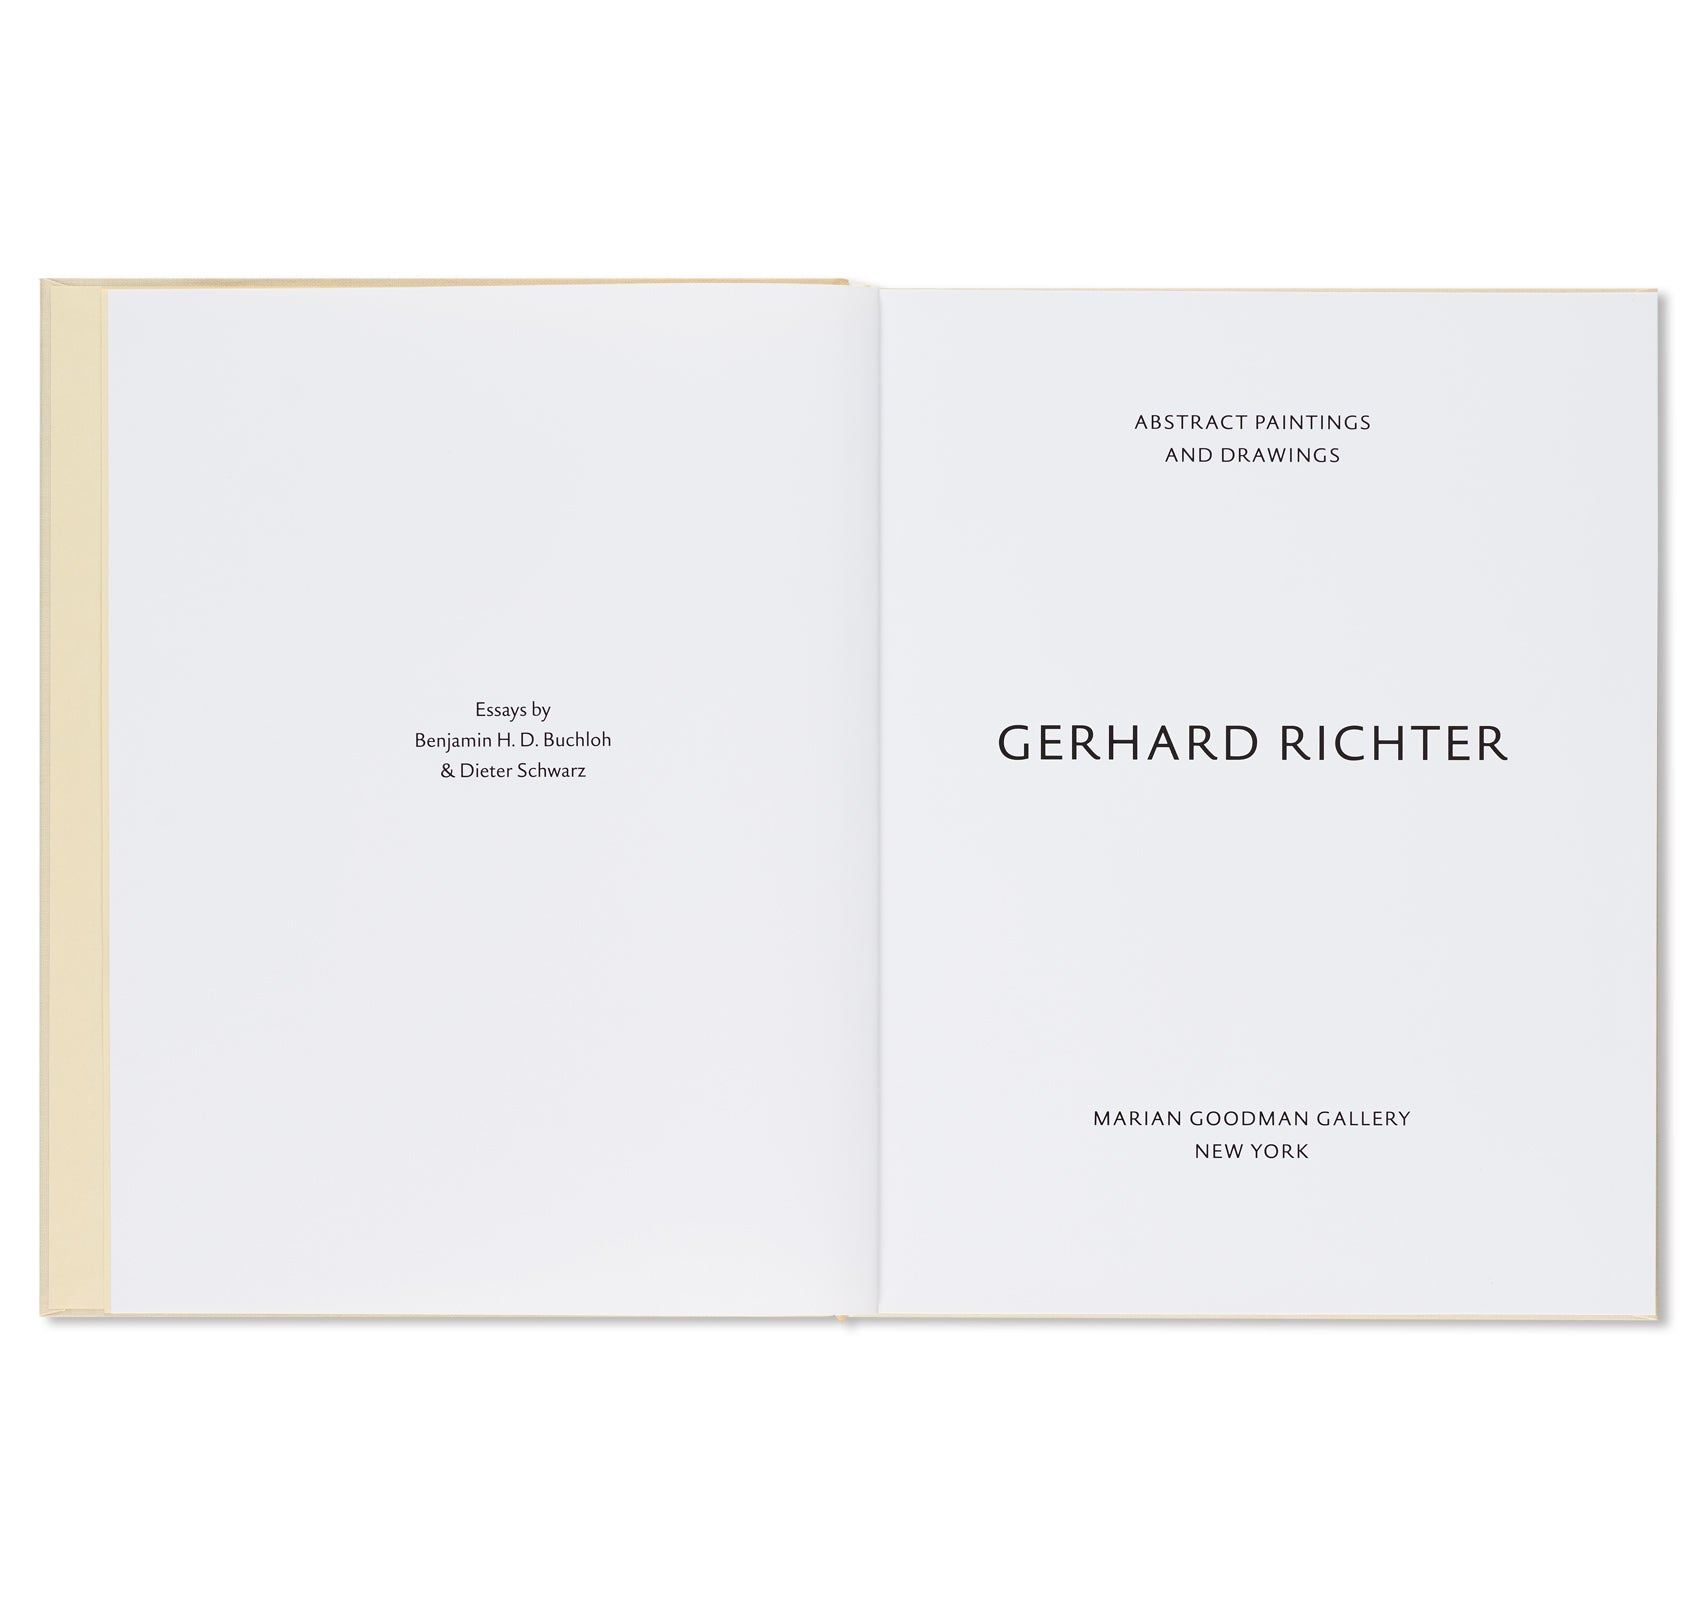 ABSTRACT PAINTINGS AND DRAWINGS by Gerhard Richter